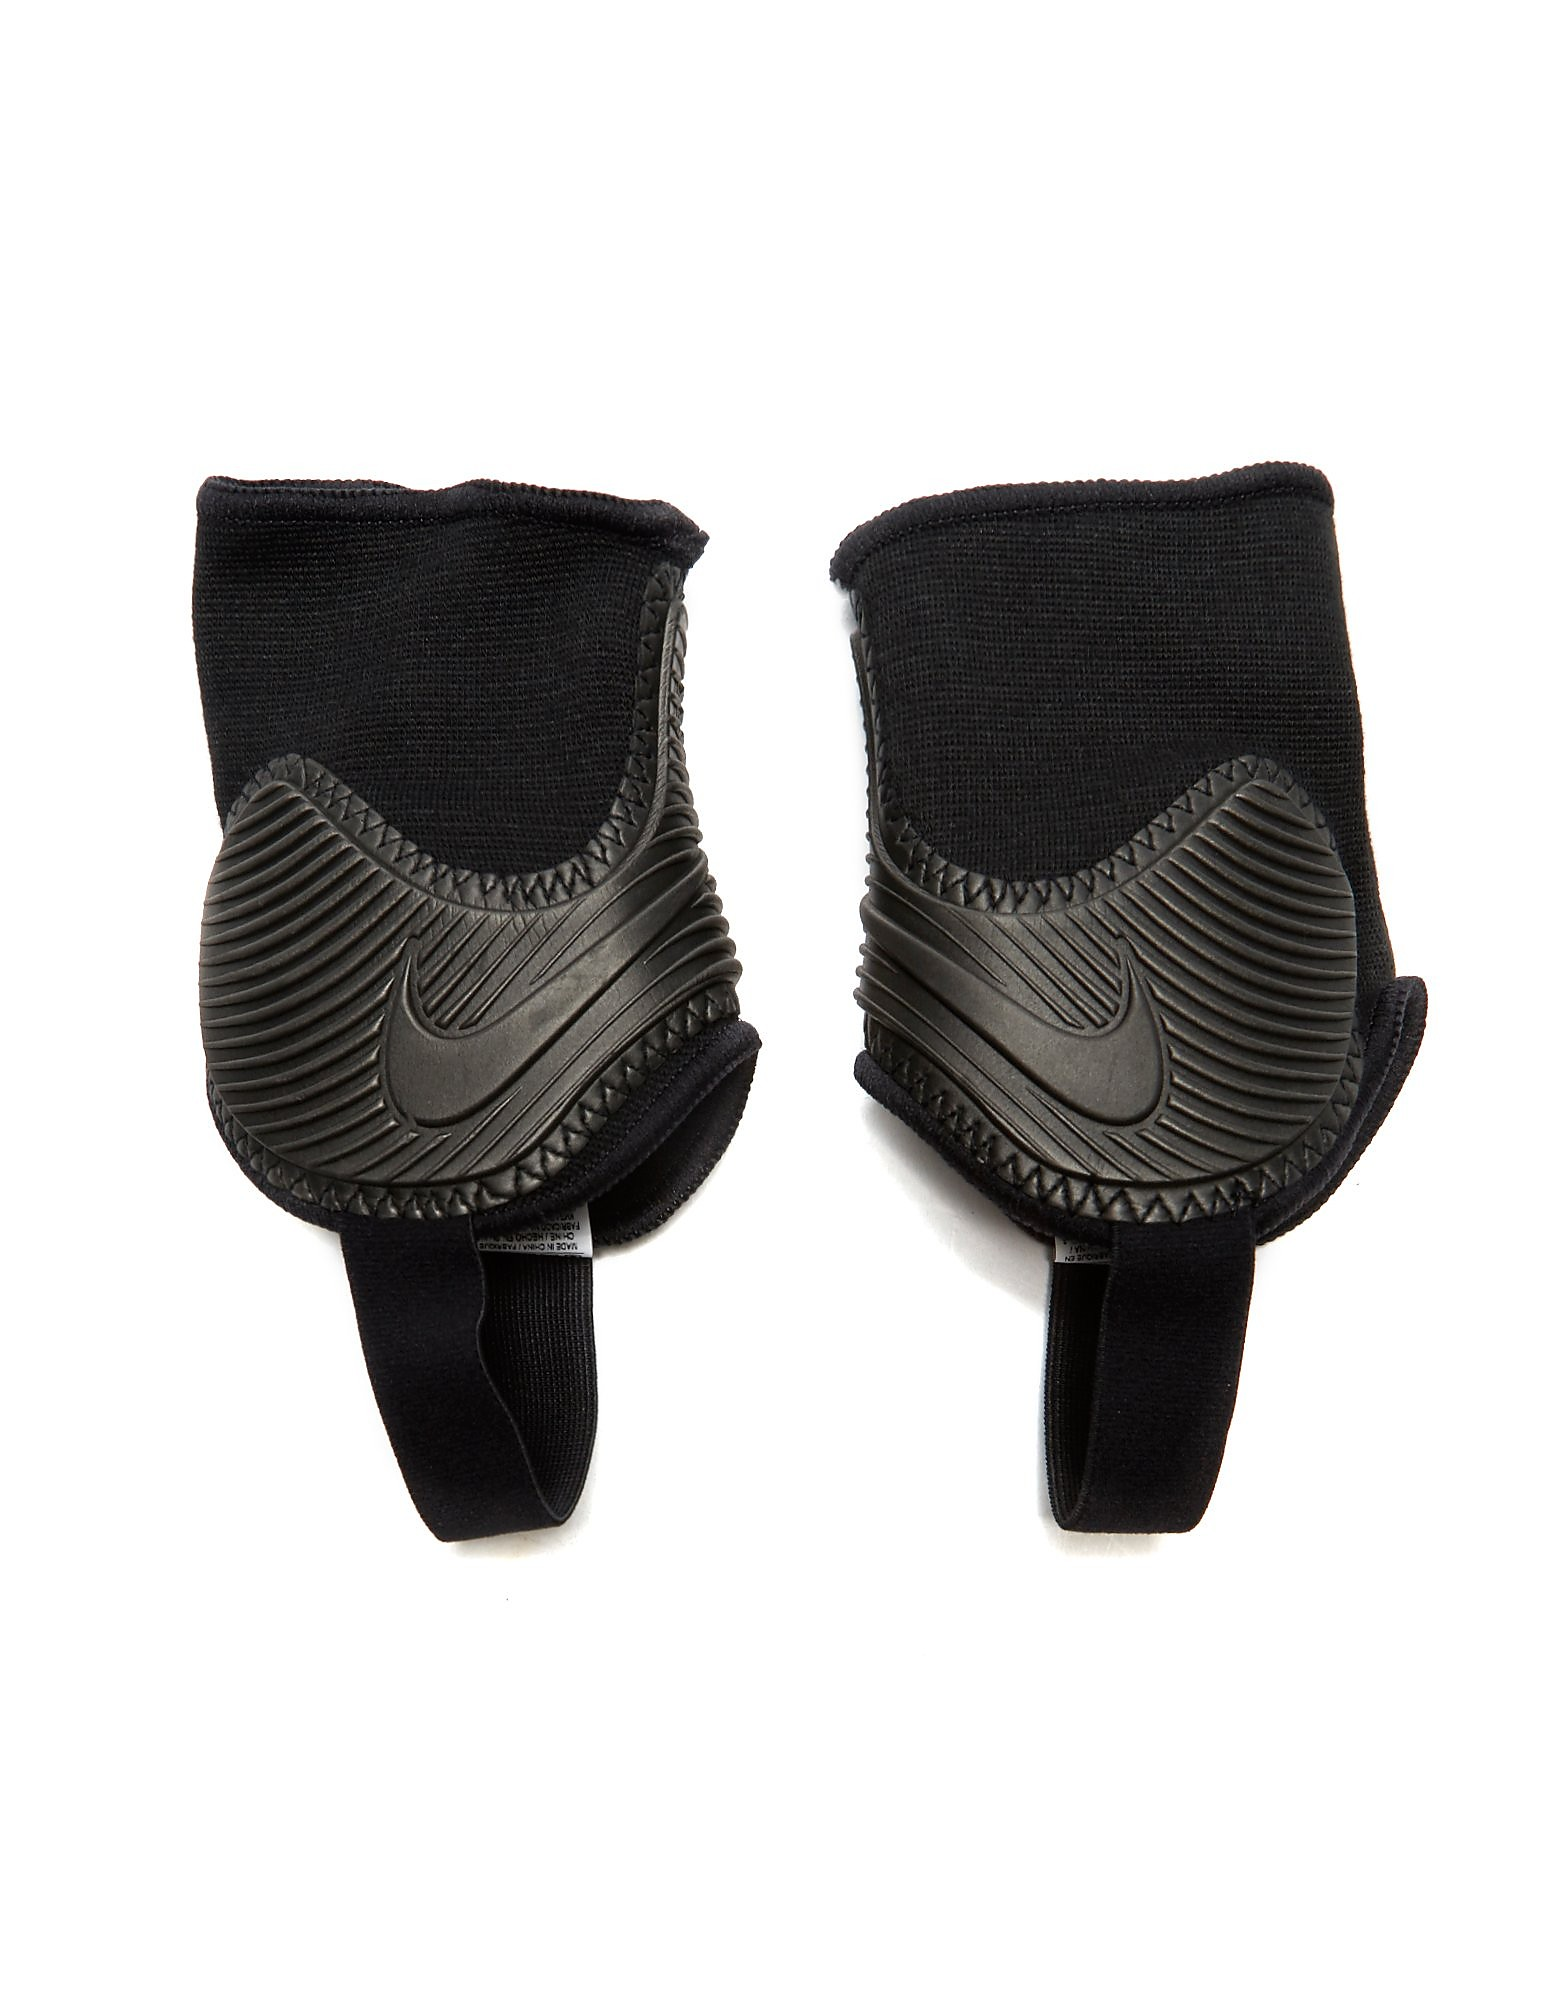 Nike Ankle Shield 2.0 Guards